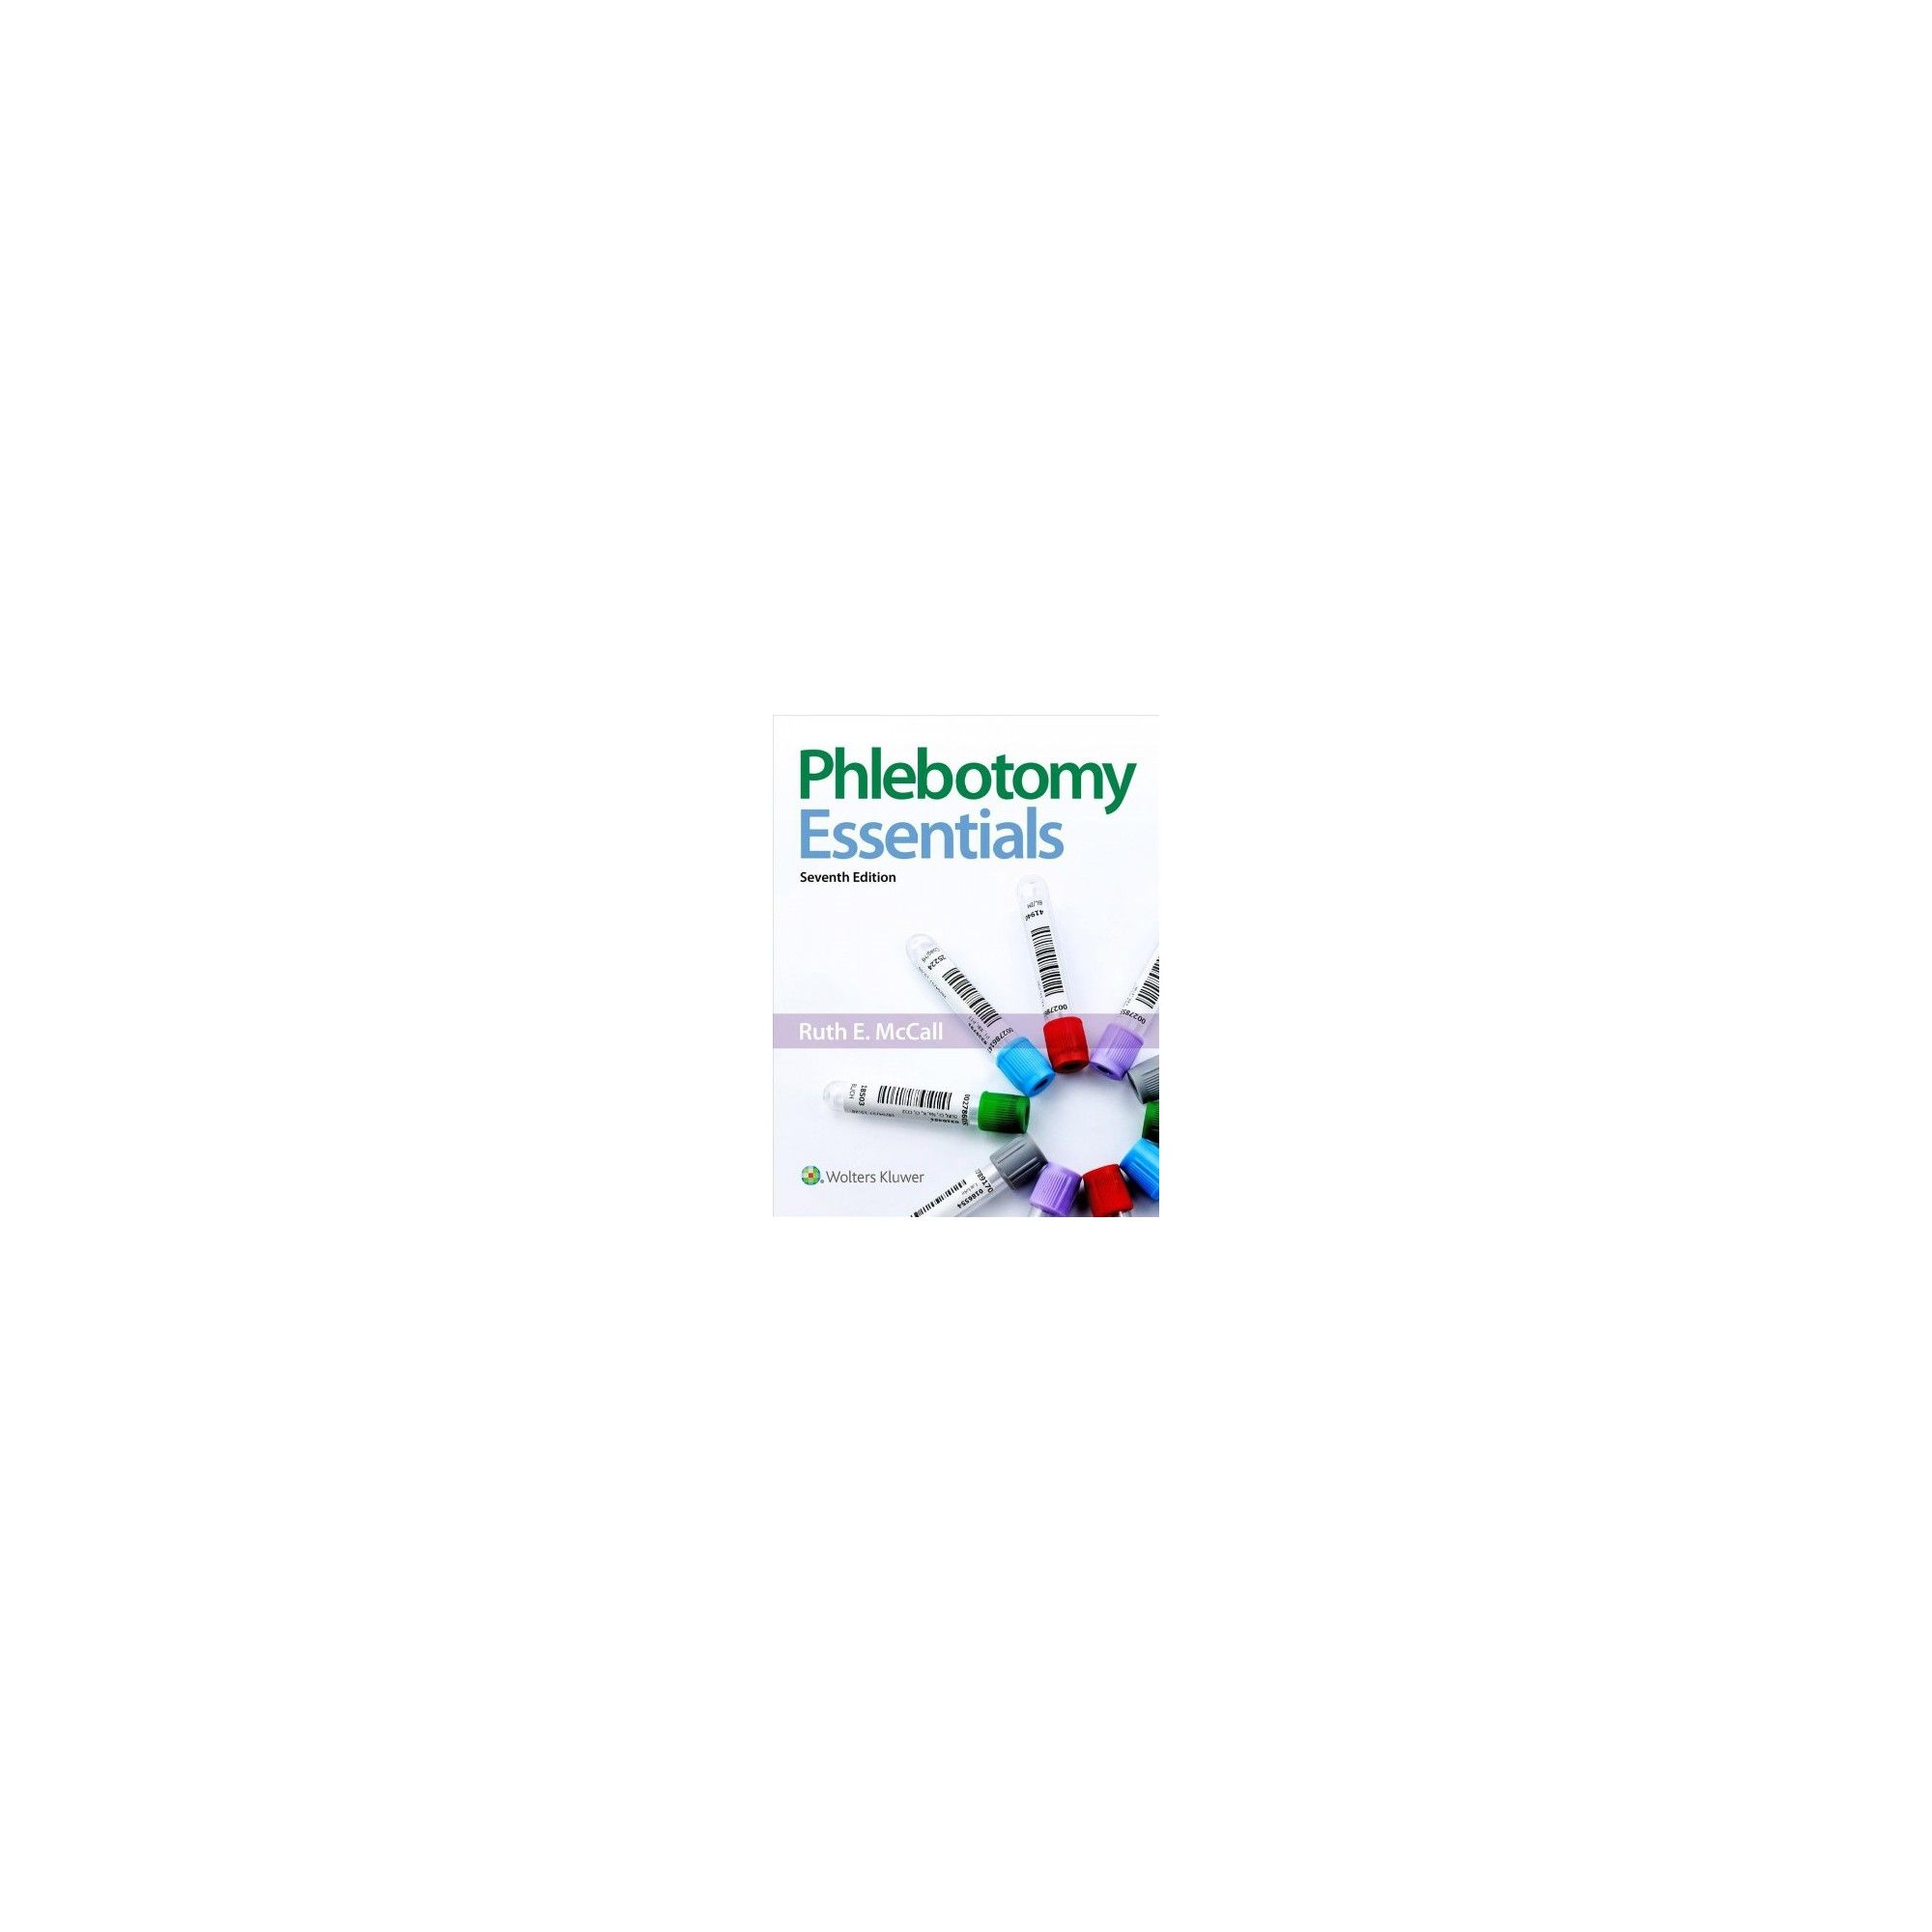 Phlebotomy Essentials by Ruth Mccall (Paperback